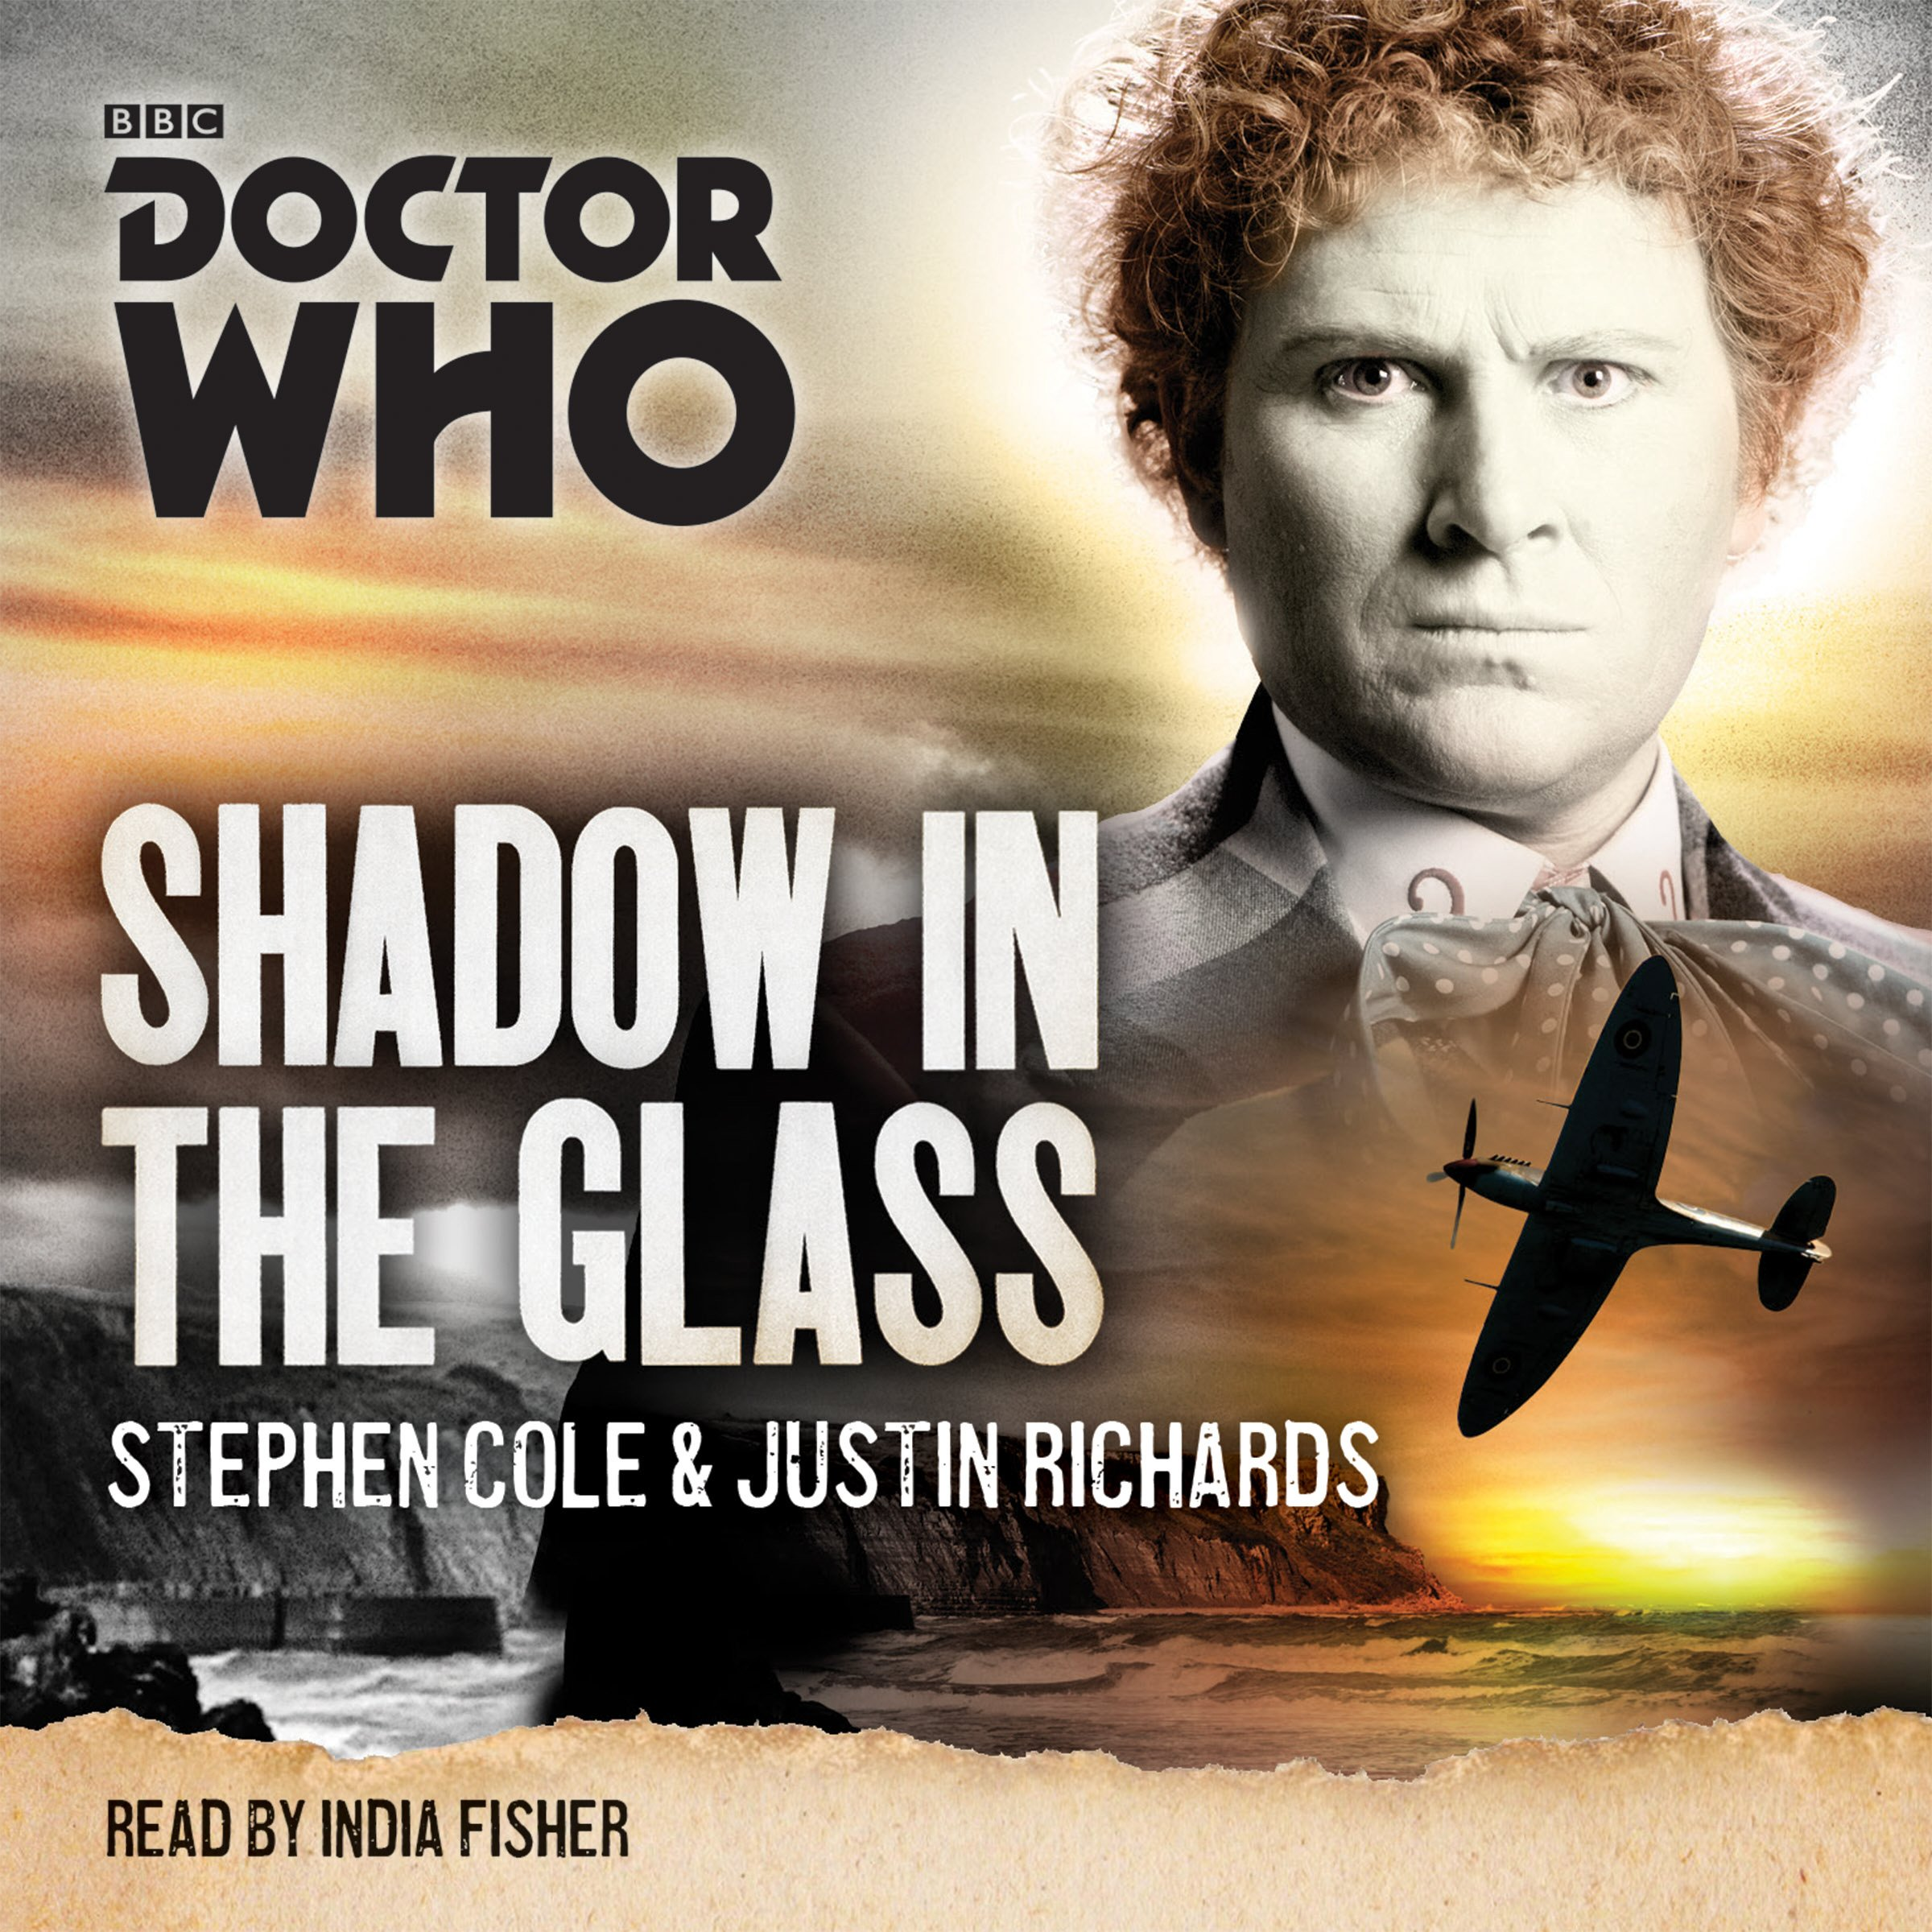 Past Doctor Adventures [41] The Shadow in the Glass - Justin Richards and Stephen Cole